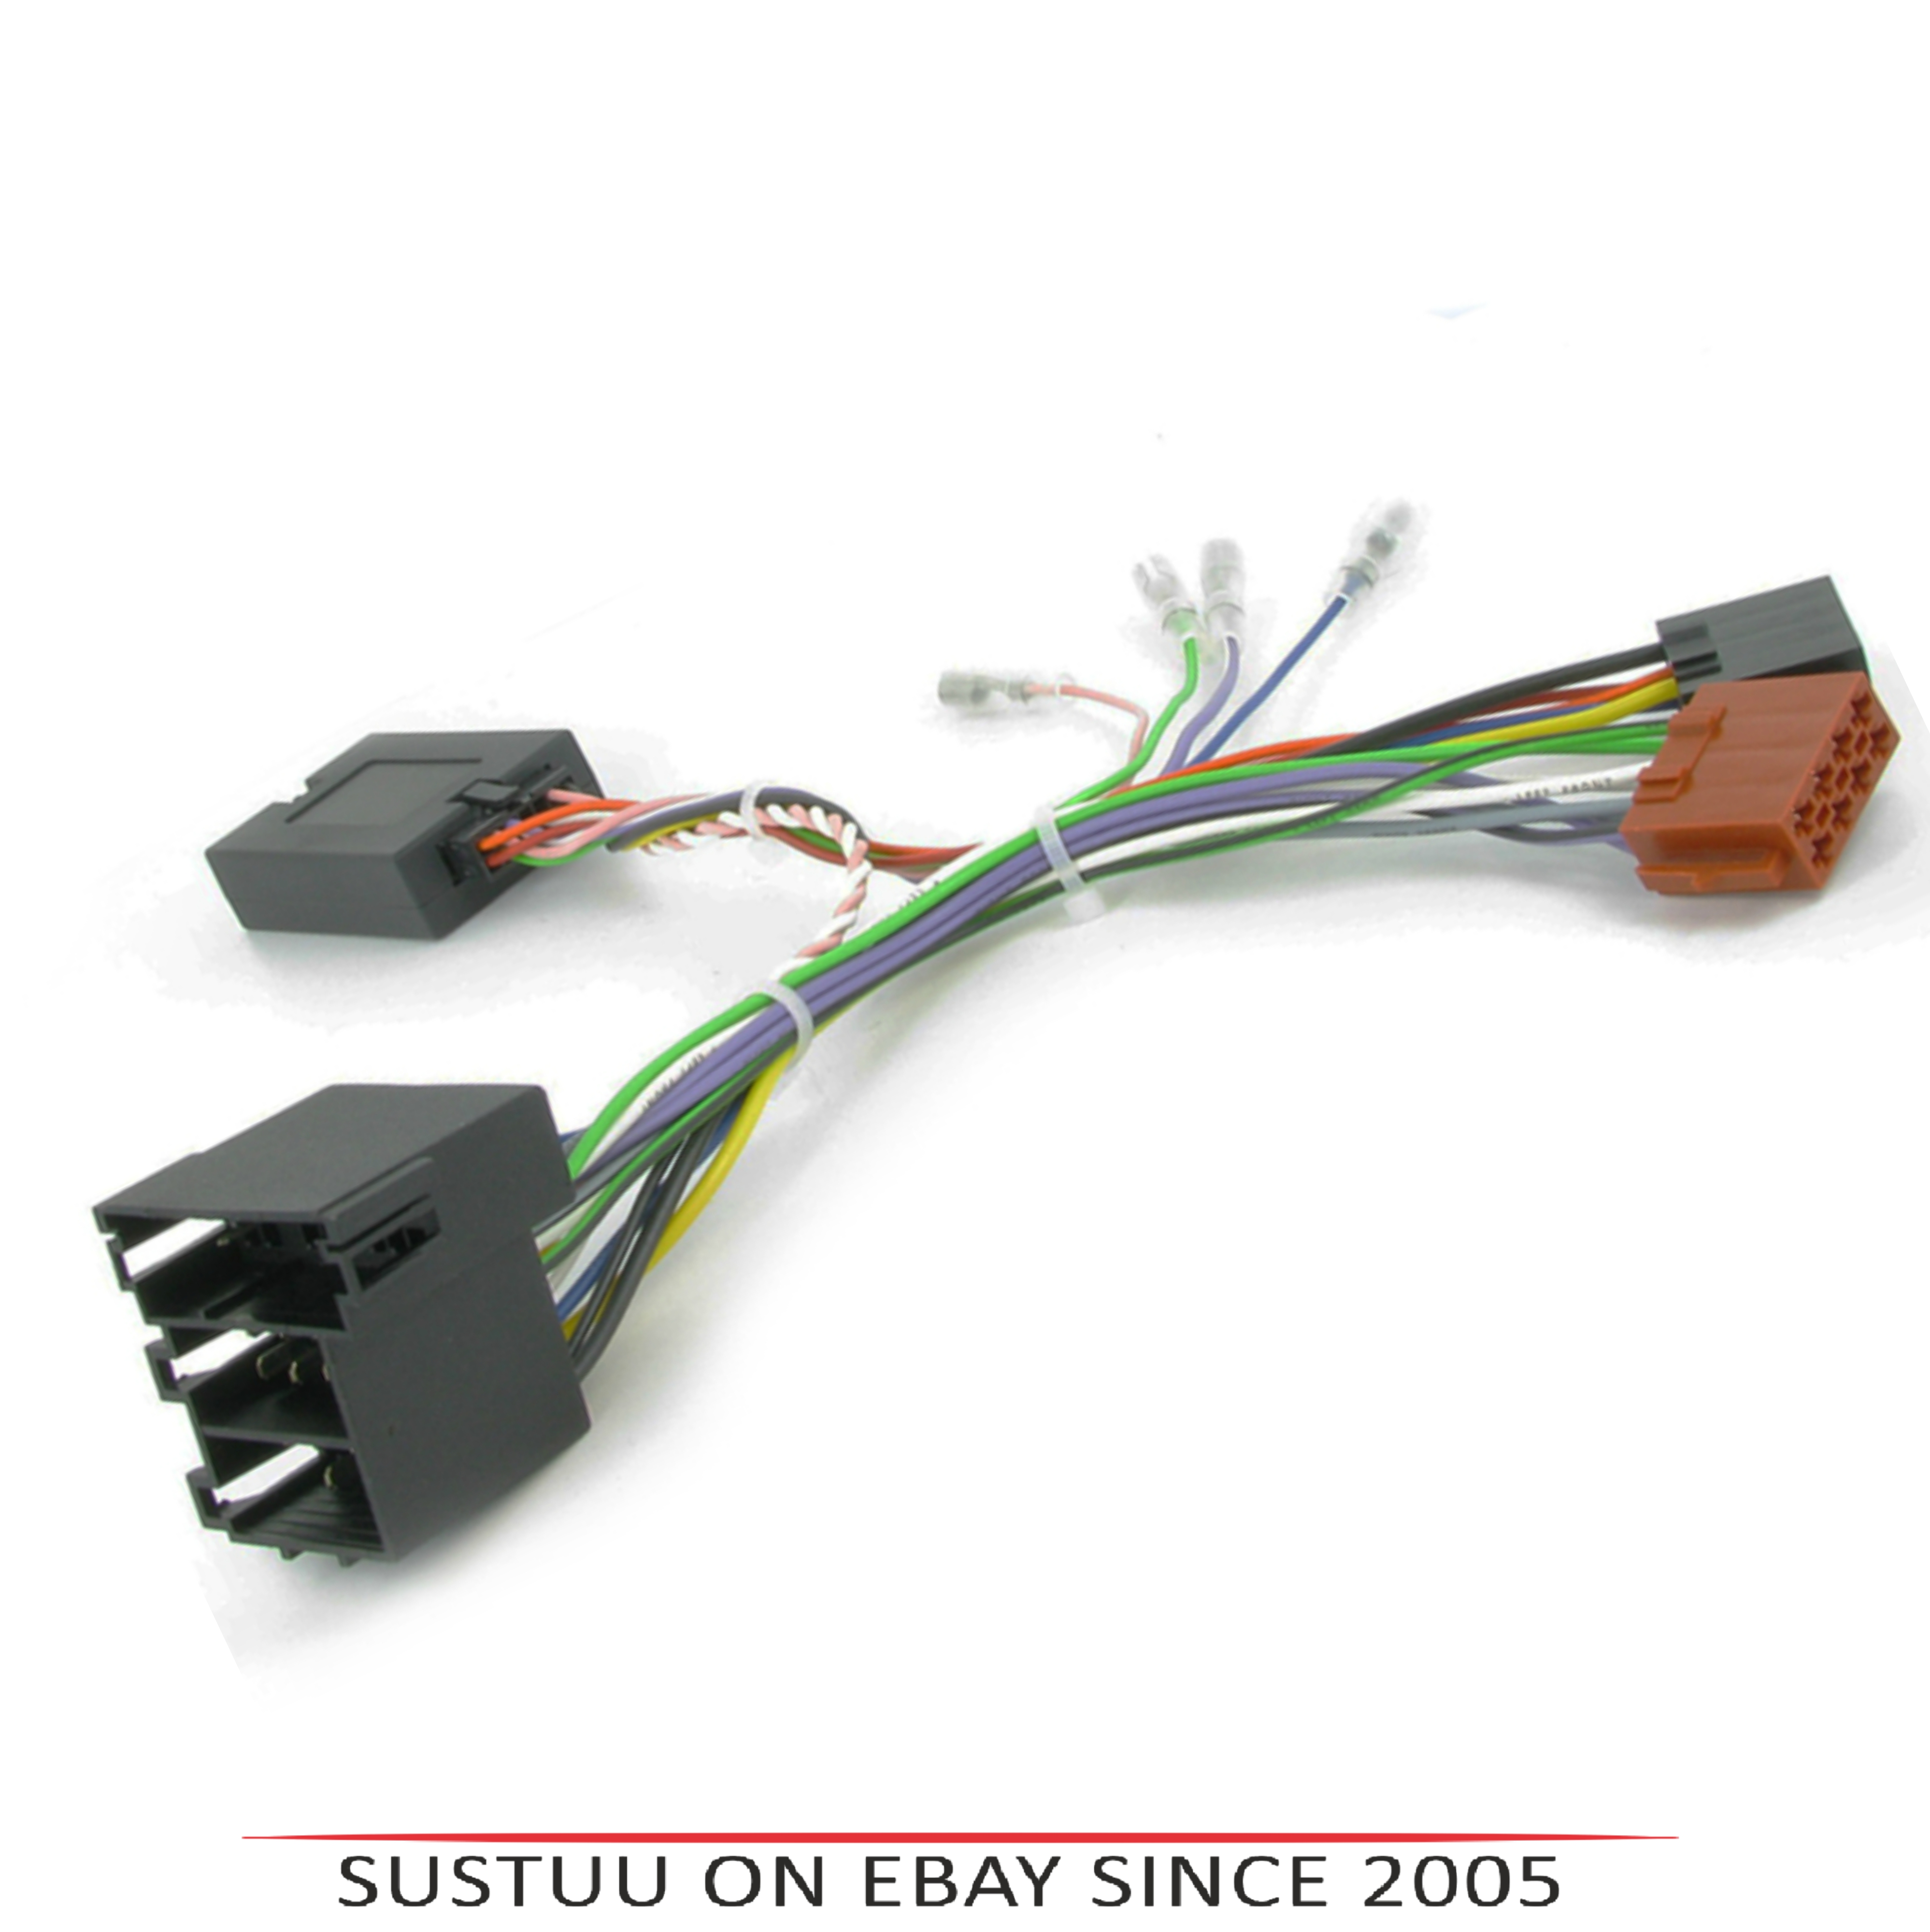 C2 SAR004.2|In Car Stalk Interface|CanBus Steering Controller|Fits Alfa Romeo MITO 2009